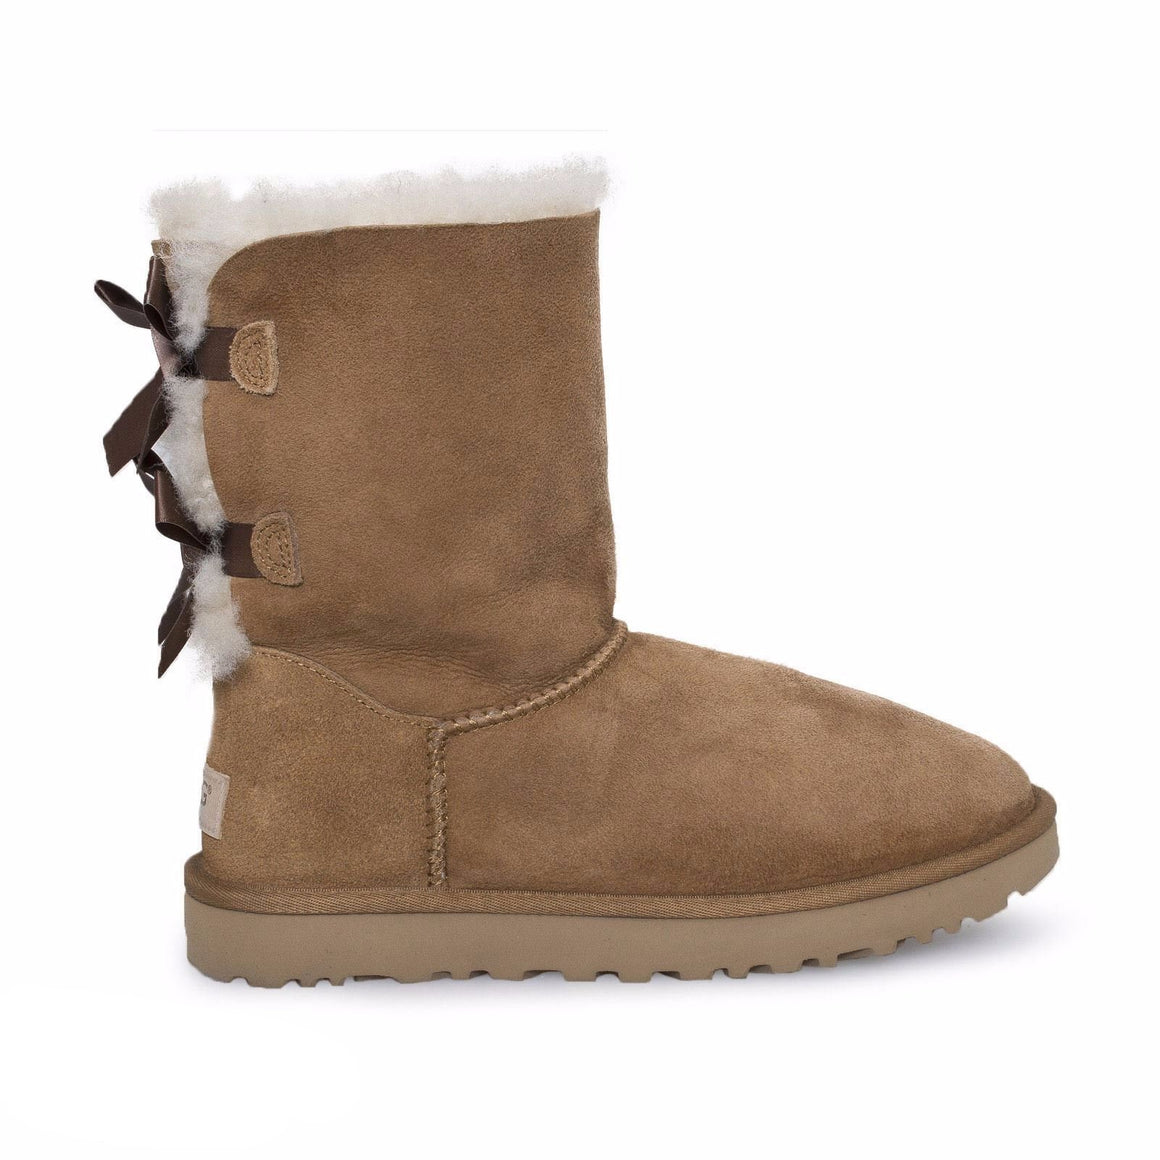 UGG Bailey bow II Chestnut Boots